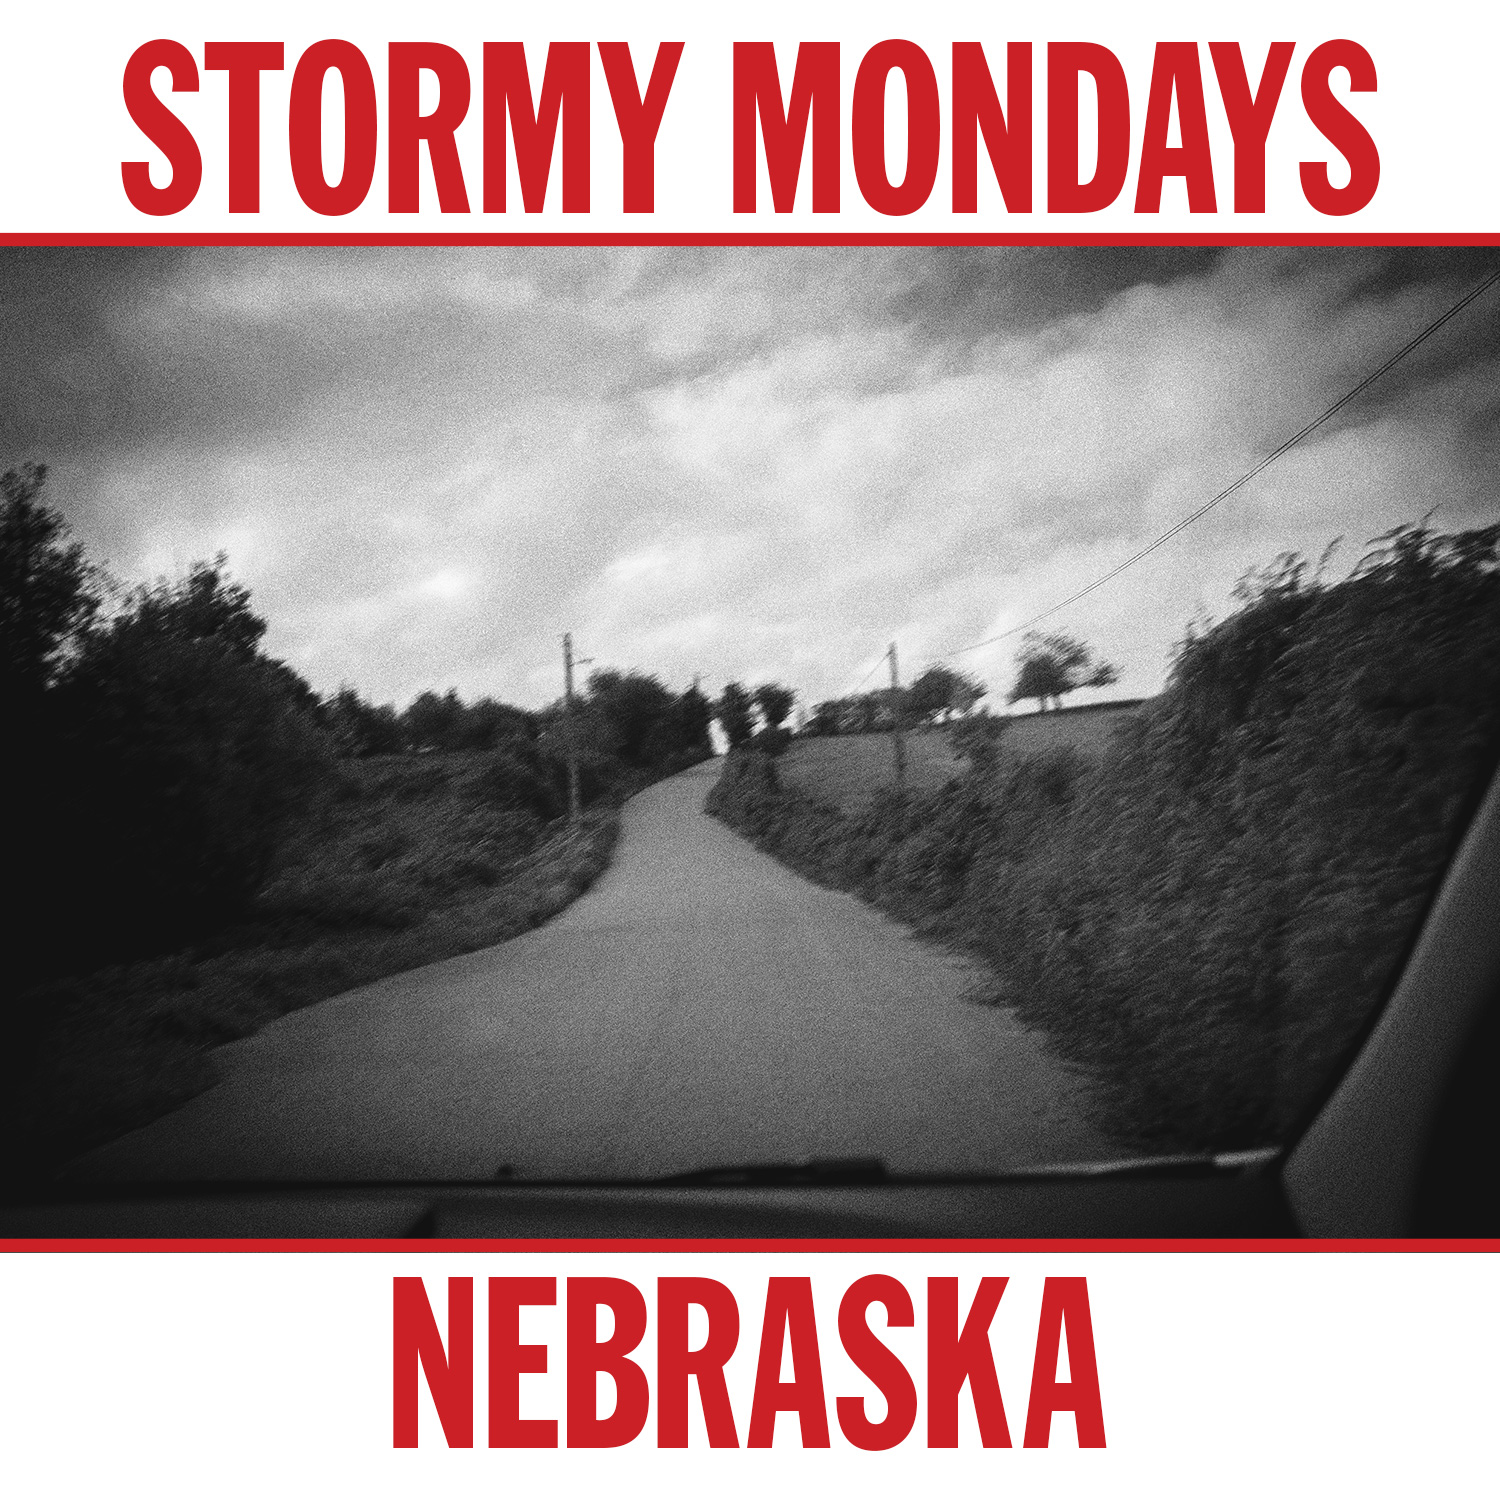 """Nebraska"", The New Stormy Mondays Album, Is Out!"